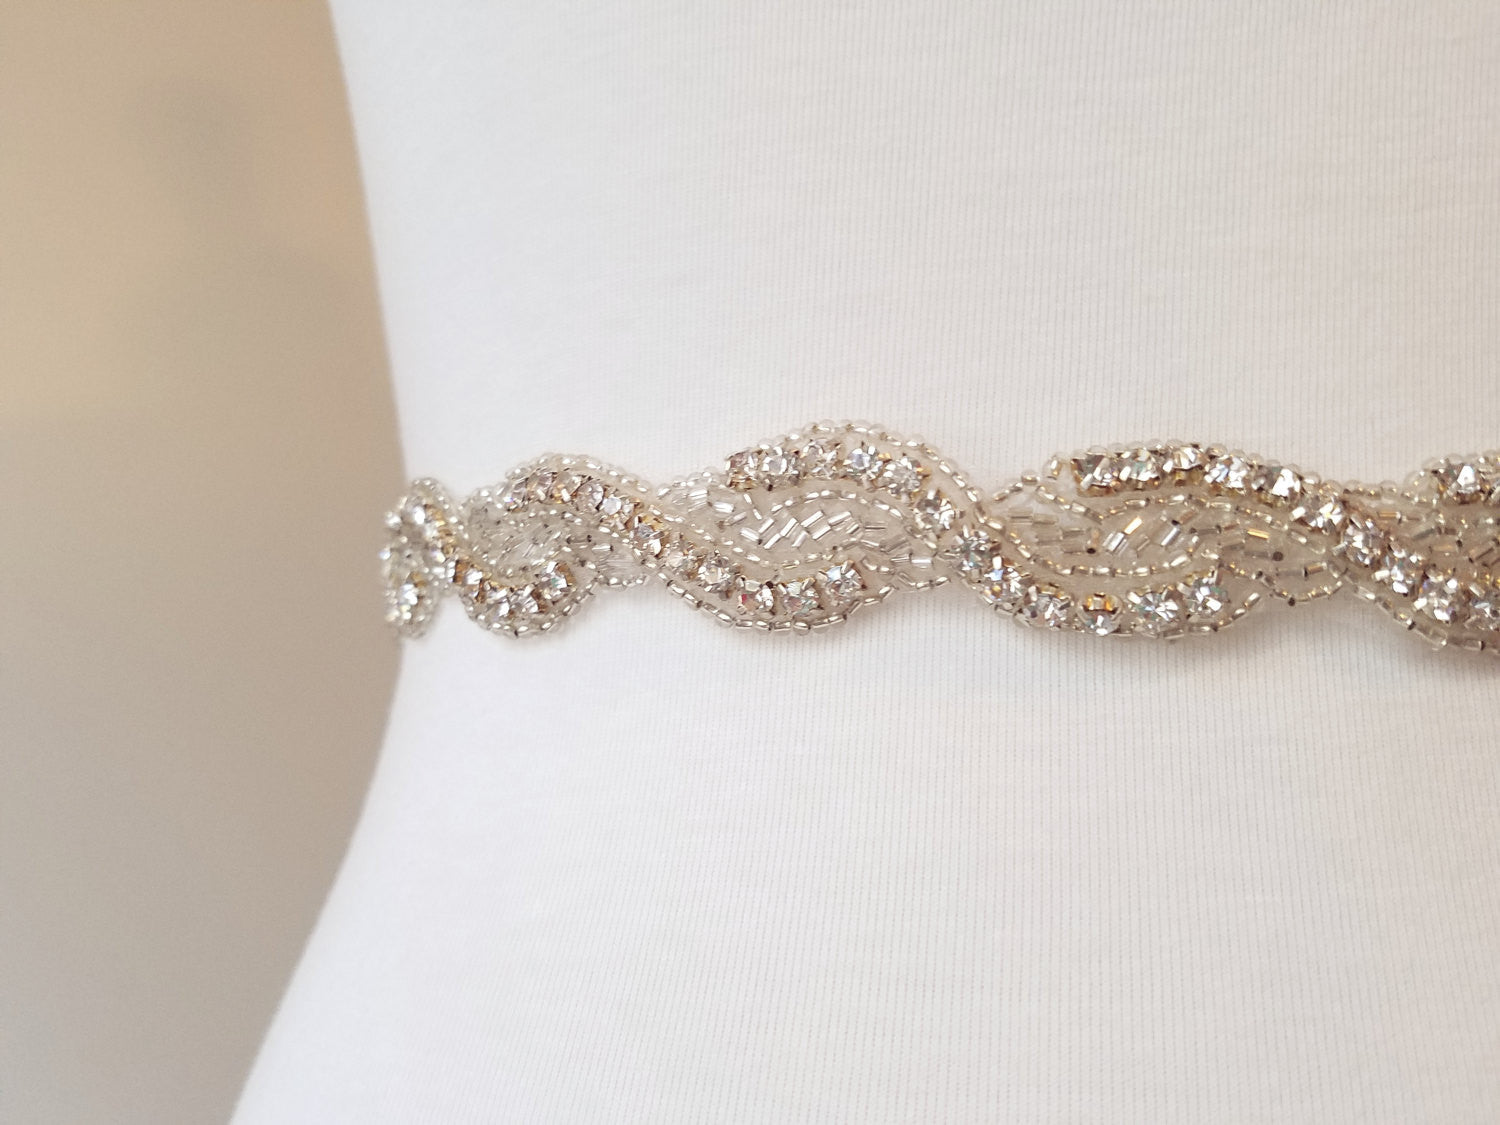 Bridal sash wedding belt rhinestone crystal sash twisted braided wedding gown dress accessory